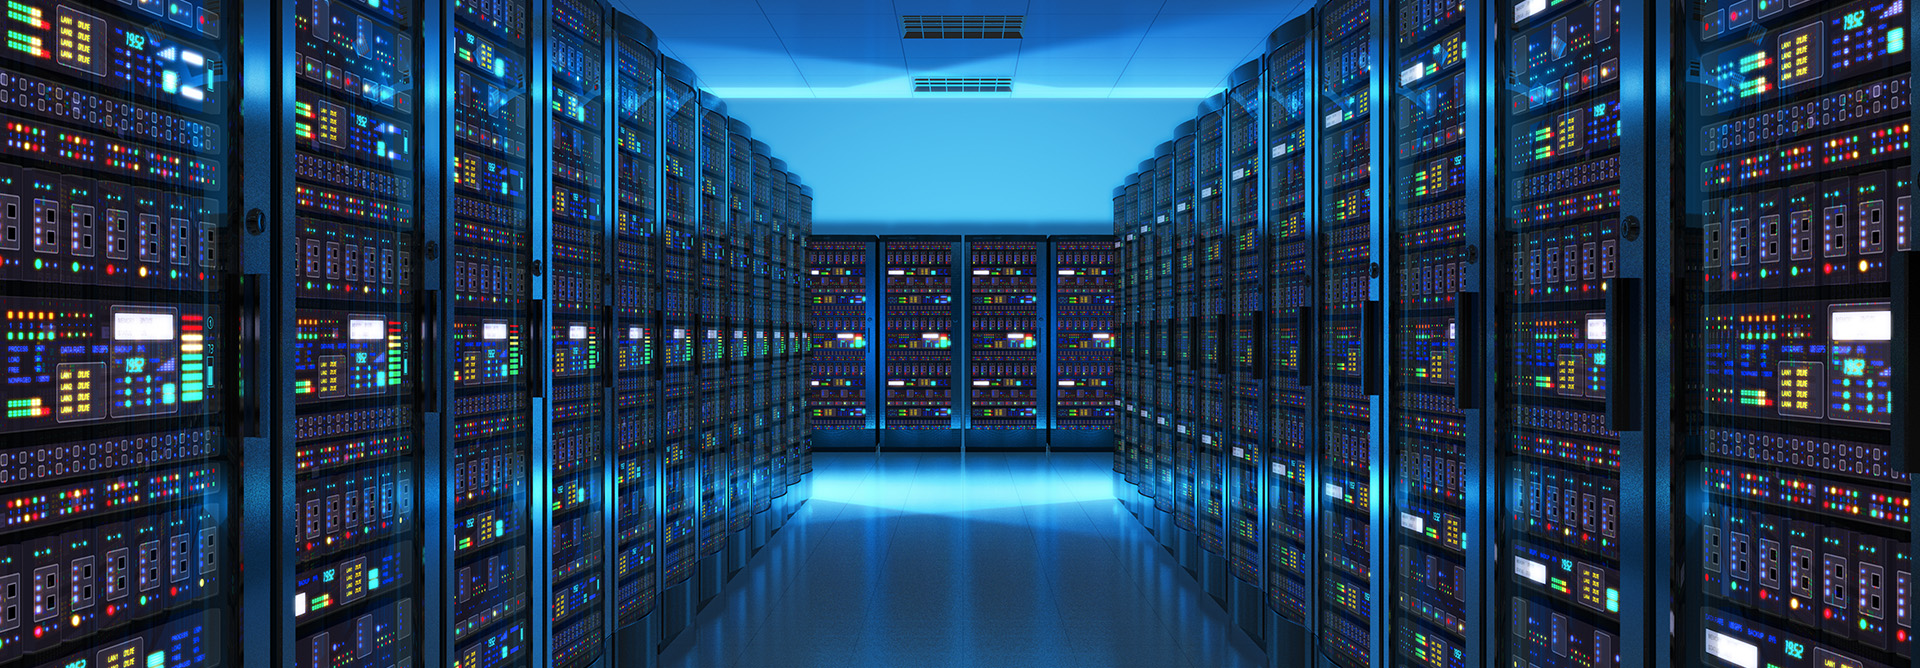 When is managed hosting the best option?